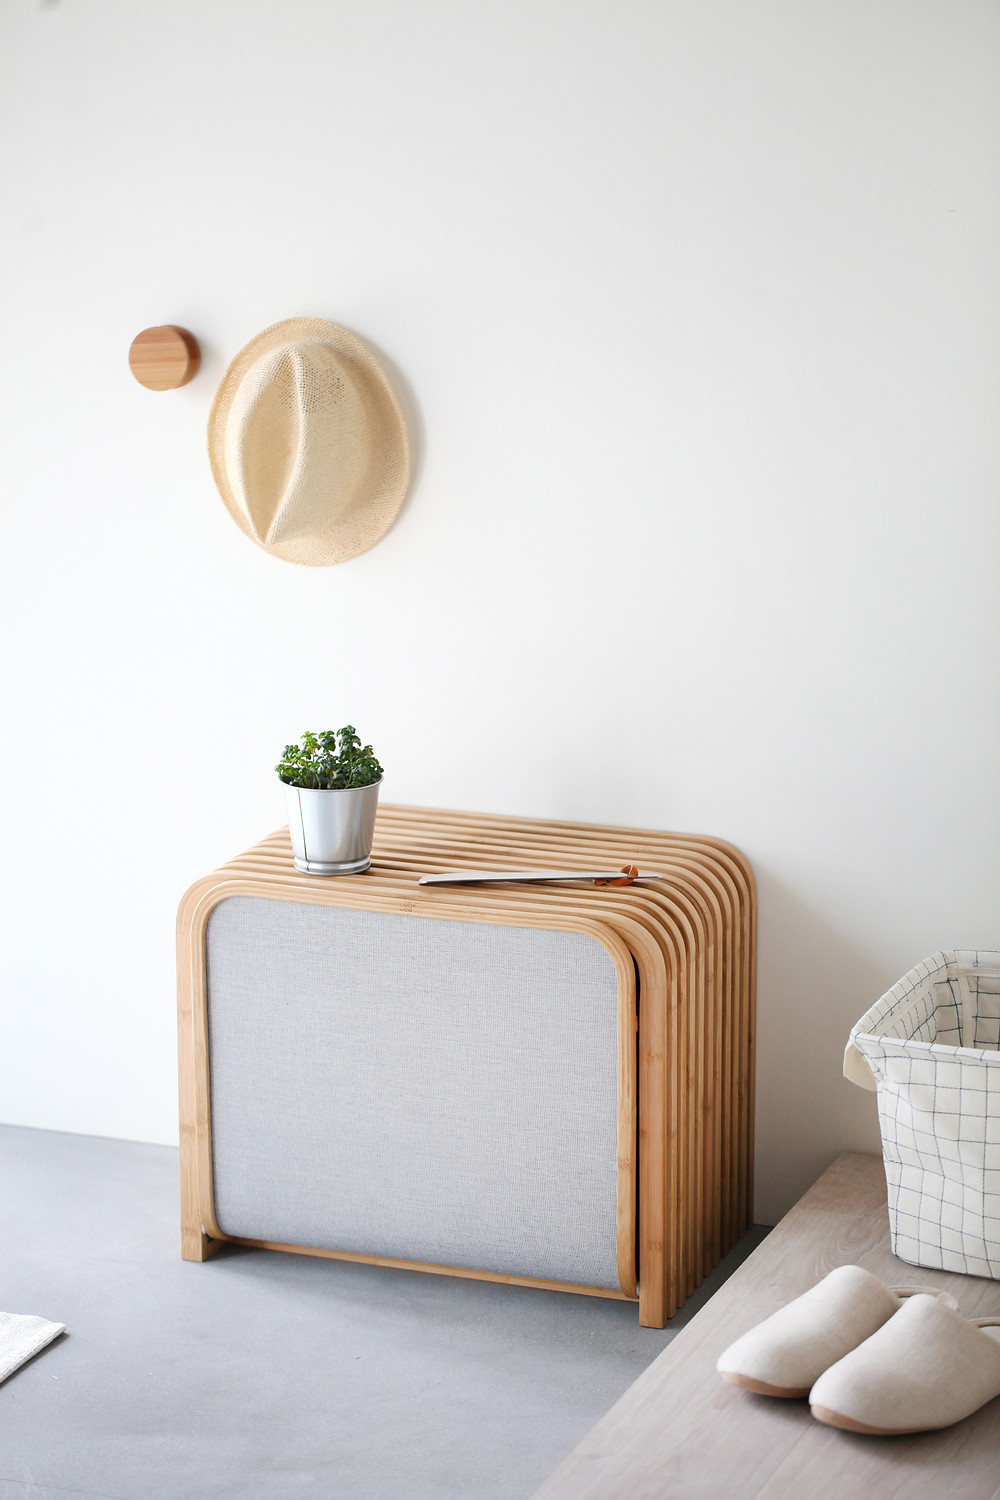 Gudee Tolin storage shoes bench bamboo